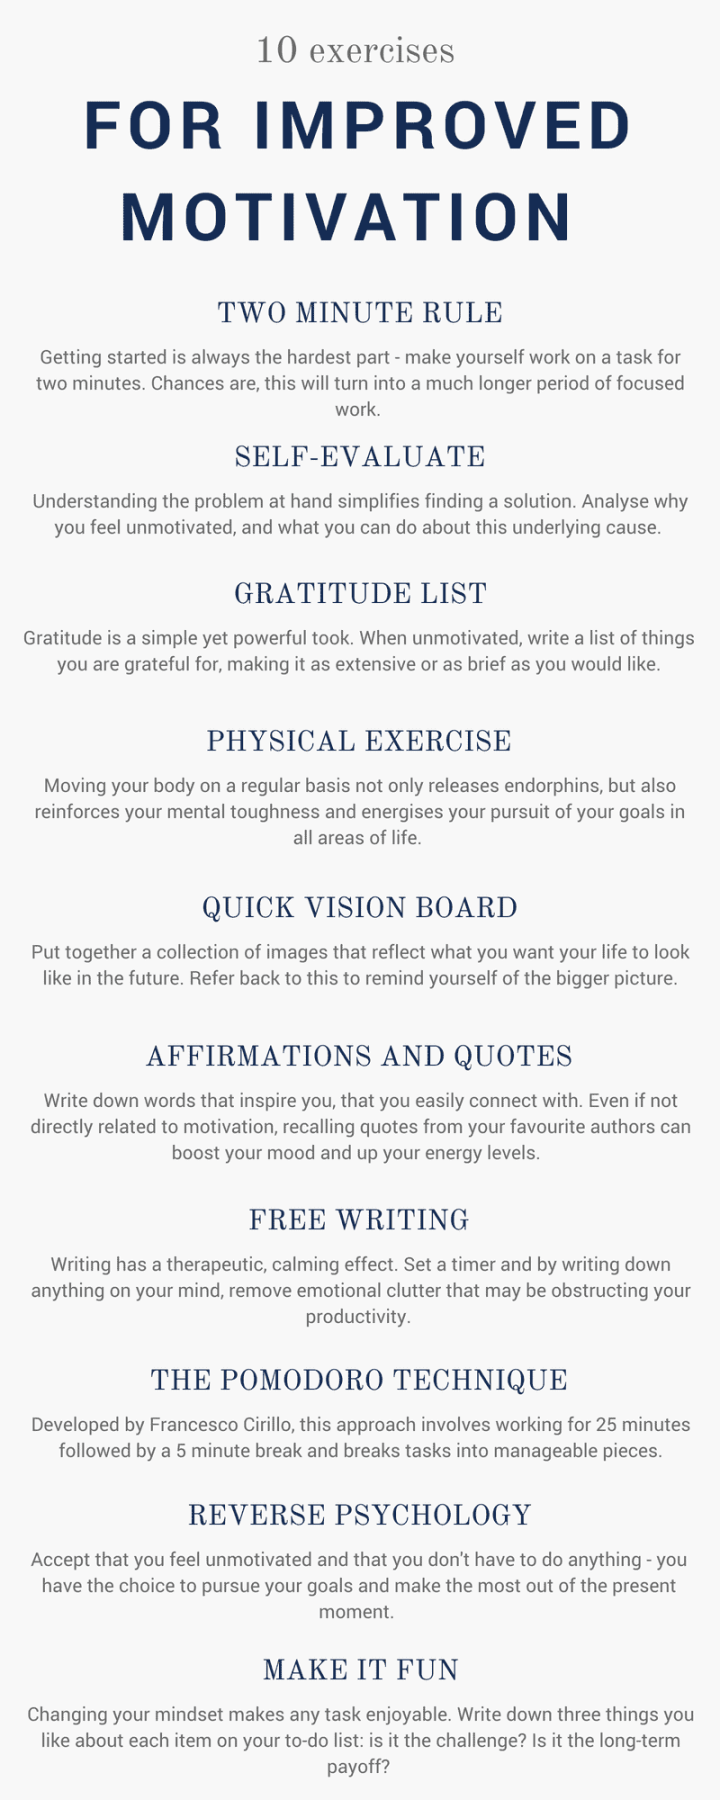 Ten exercises to boost your motivation, get out of a slump and energise your workflow - read more at INACCORDANCE